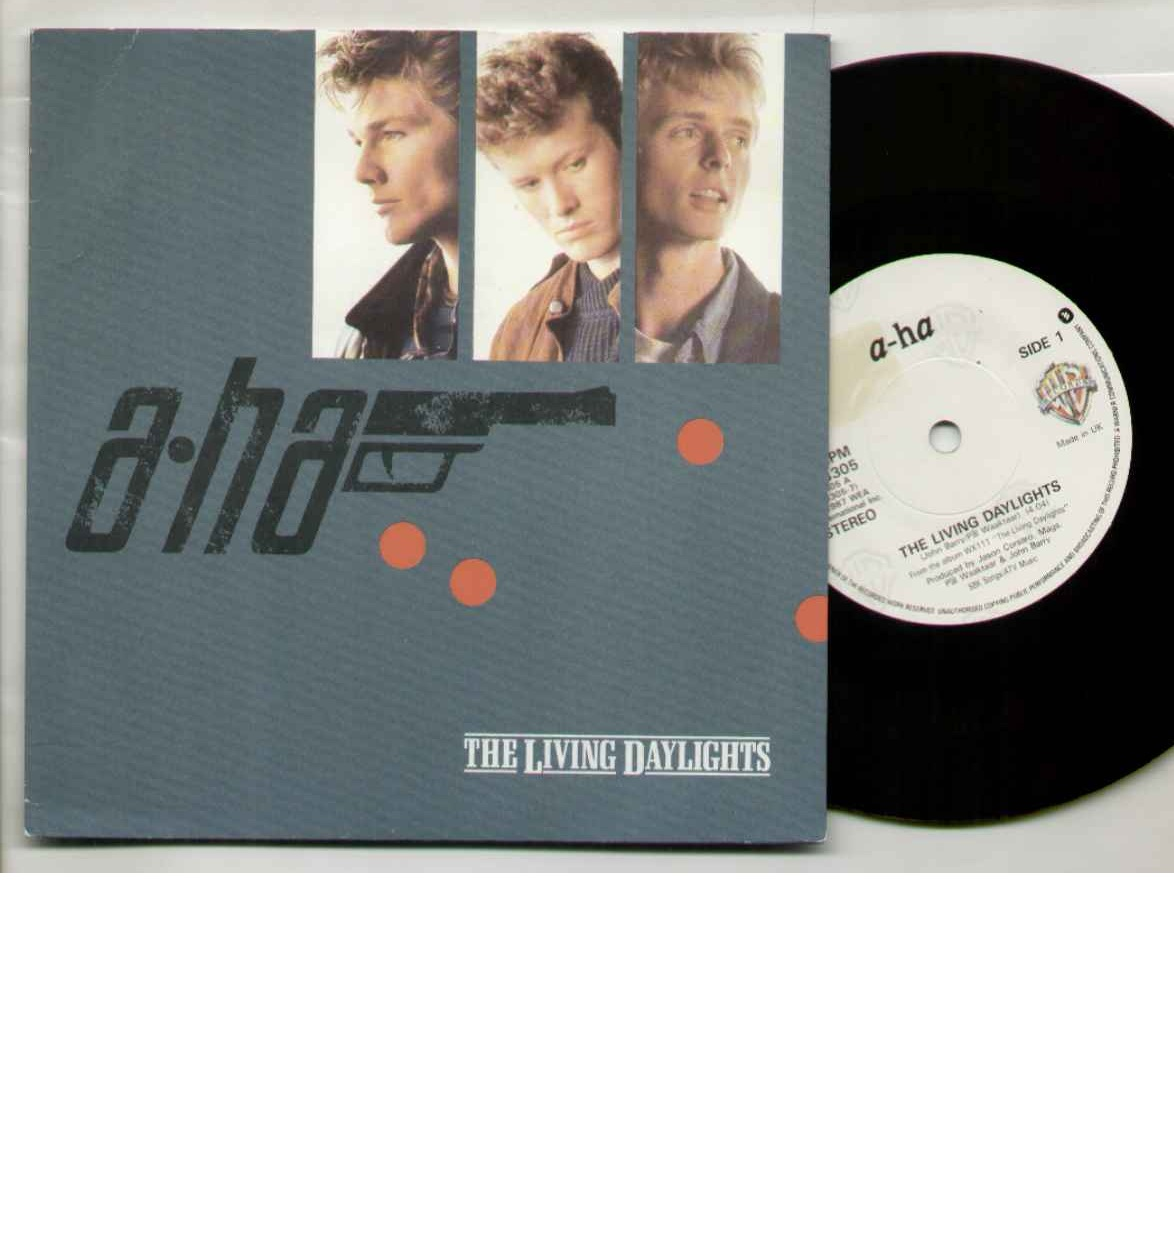 A-Ha - Living Daylights